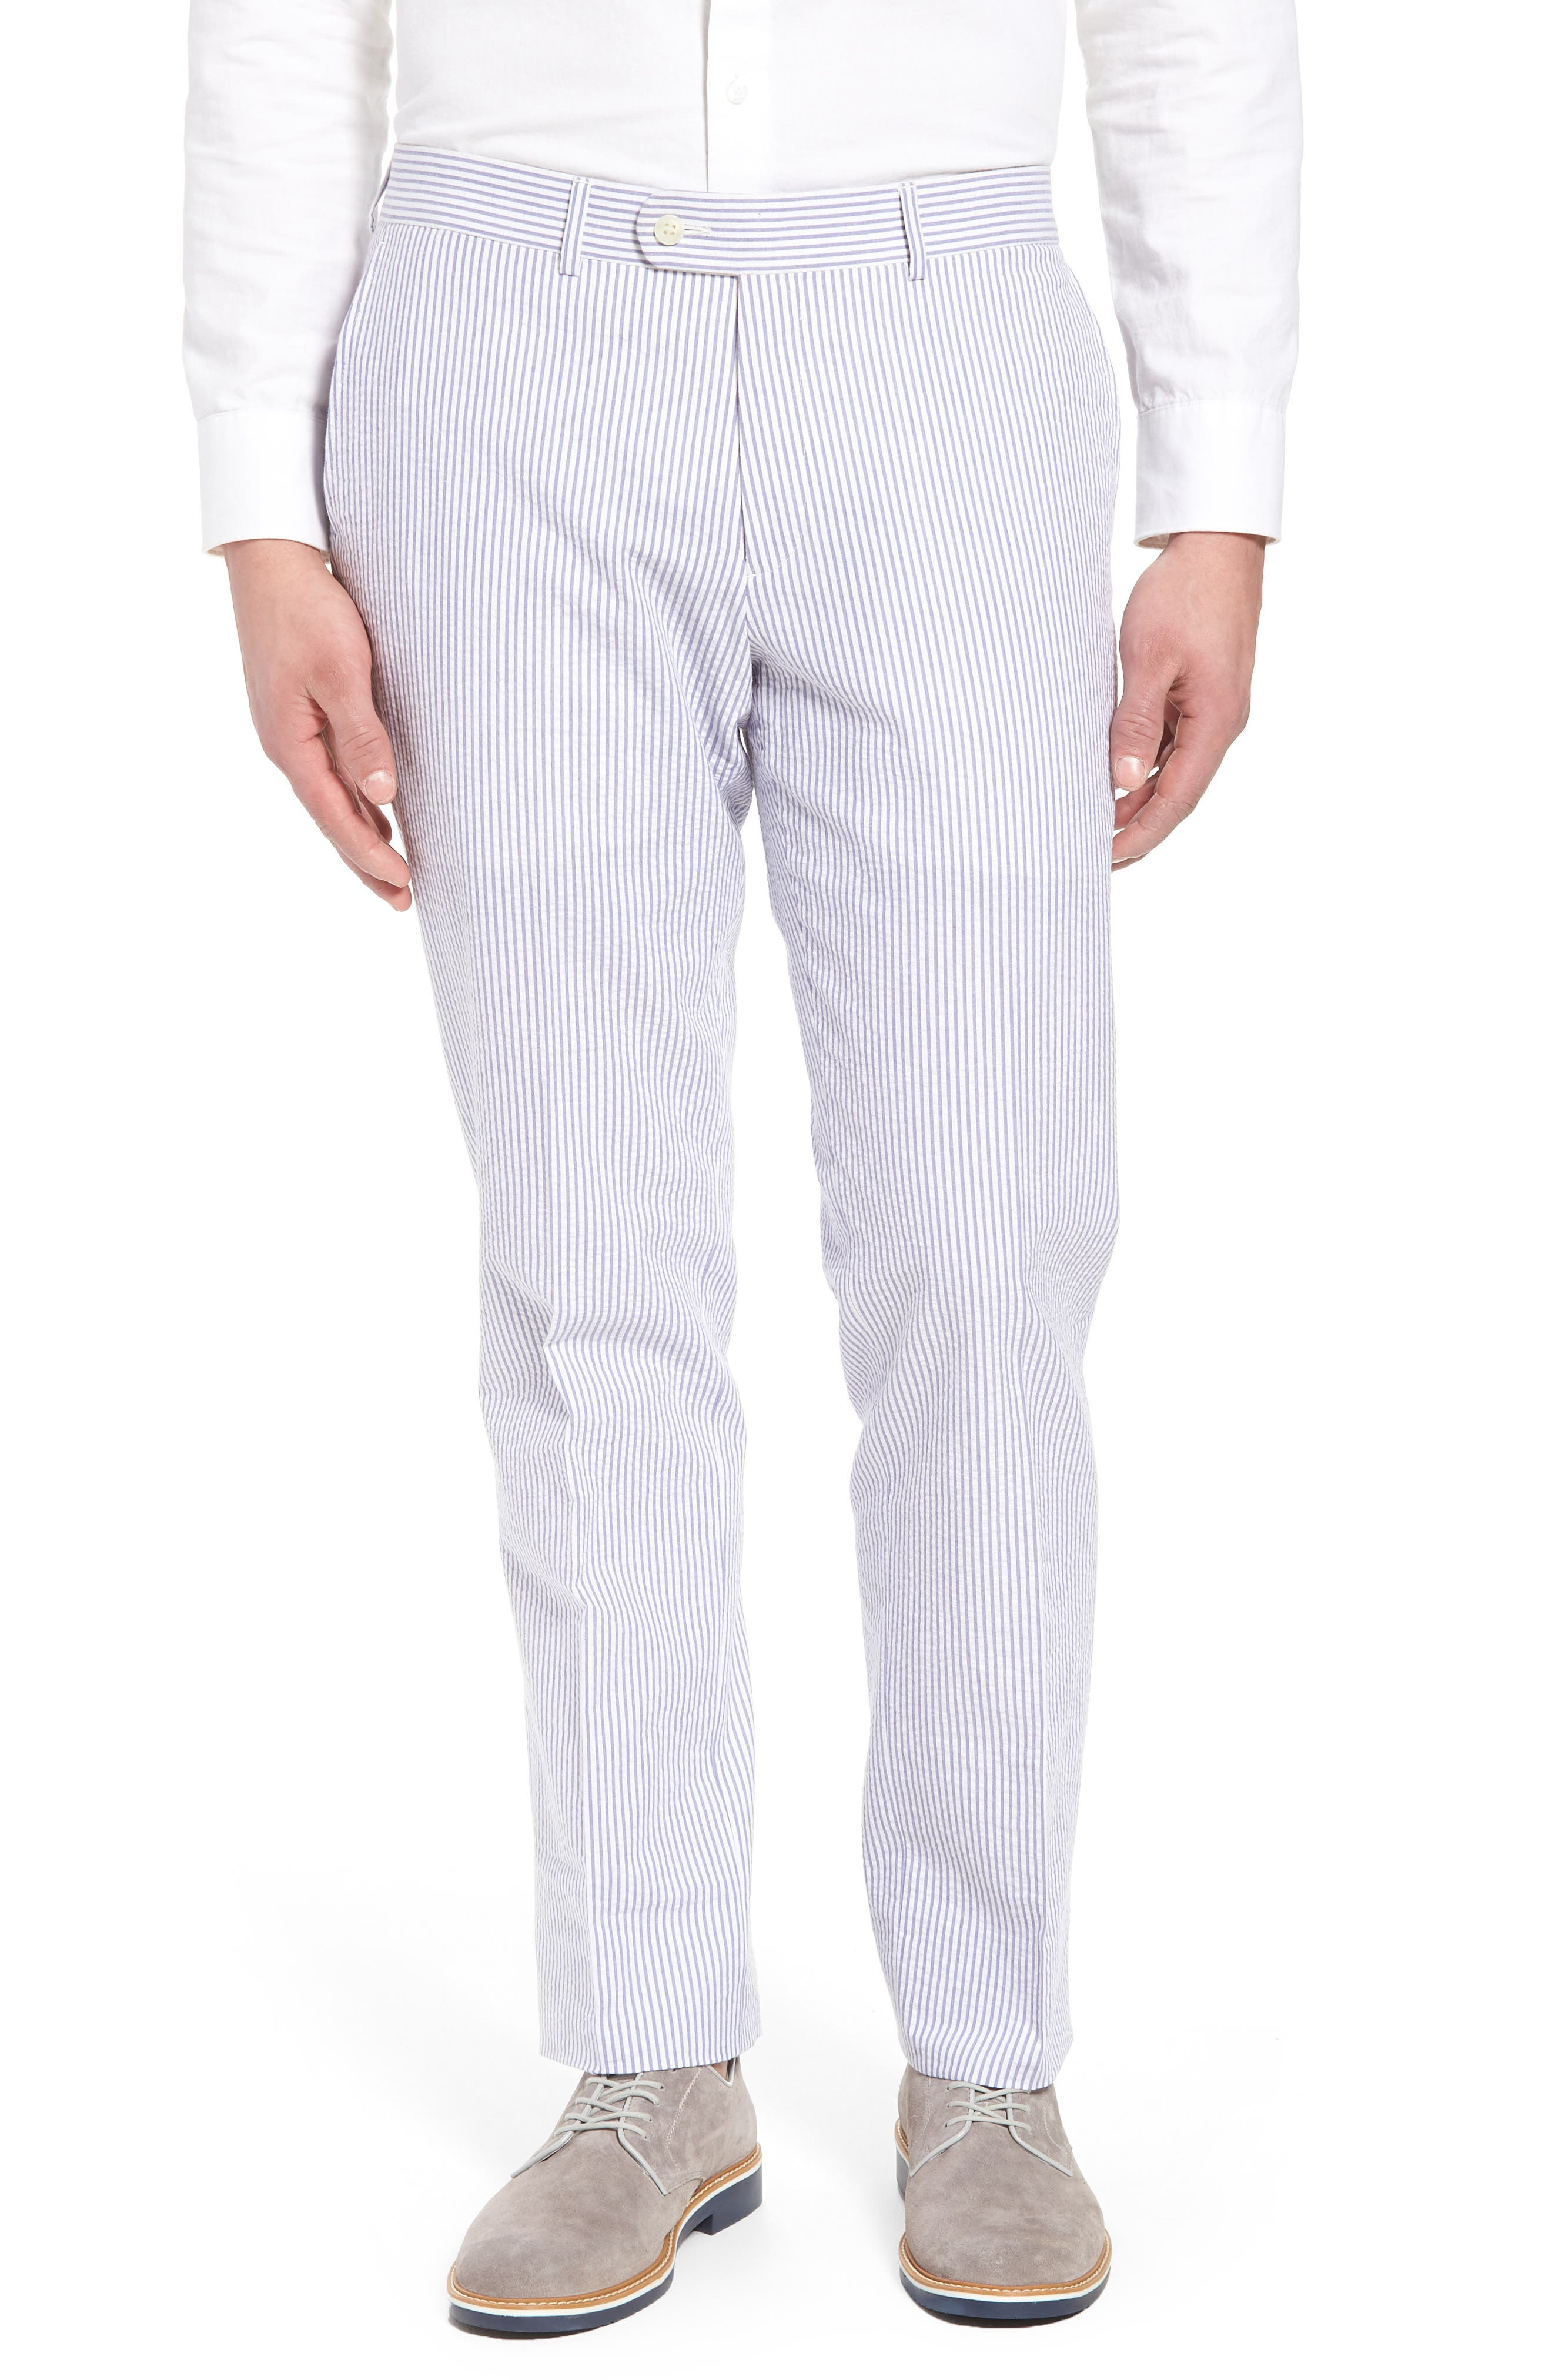 Andrew AIM Flat Front Seersucker Trousers,                         Main,                         color, BLUE AND WHITE